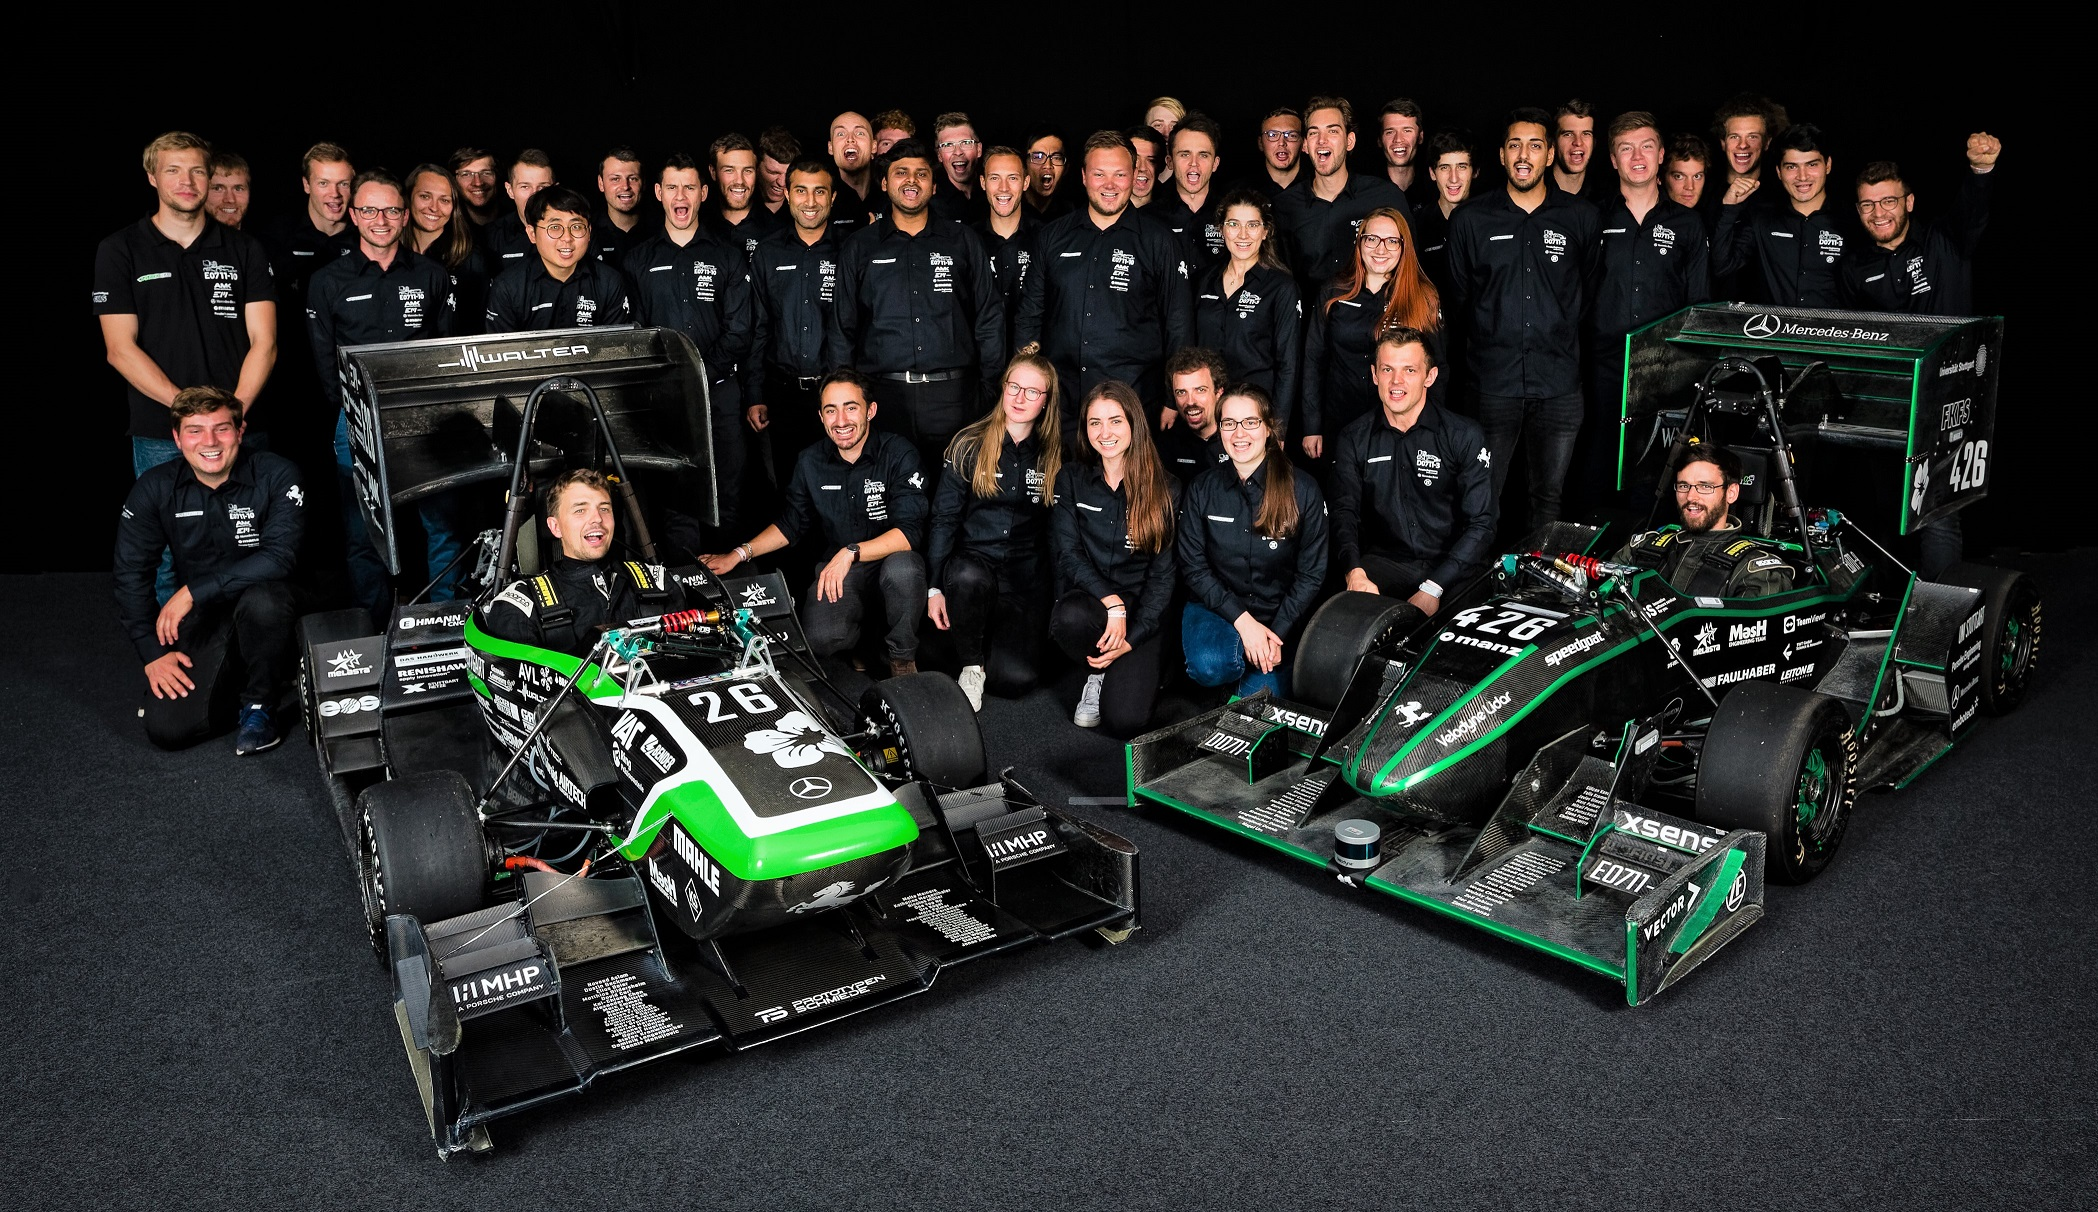 Greenteam team photo smaller 20190807_16-57-04_7992_Johannes-klein.jpg